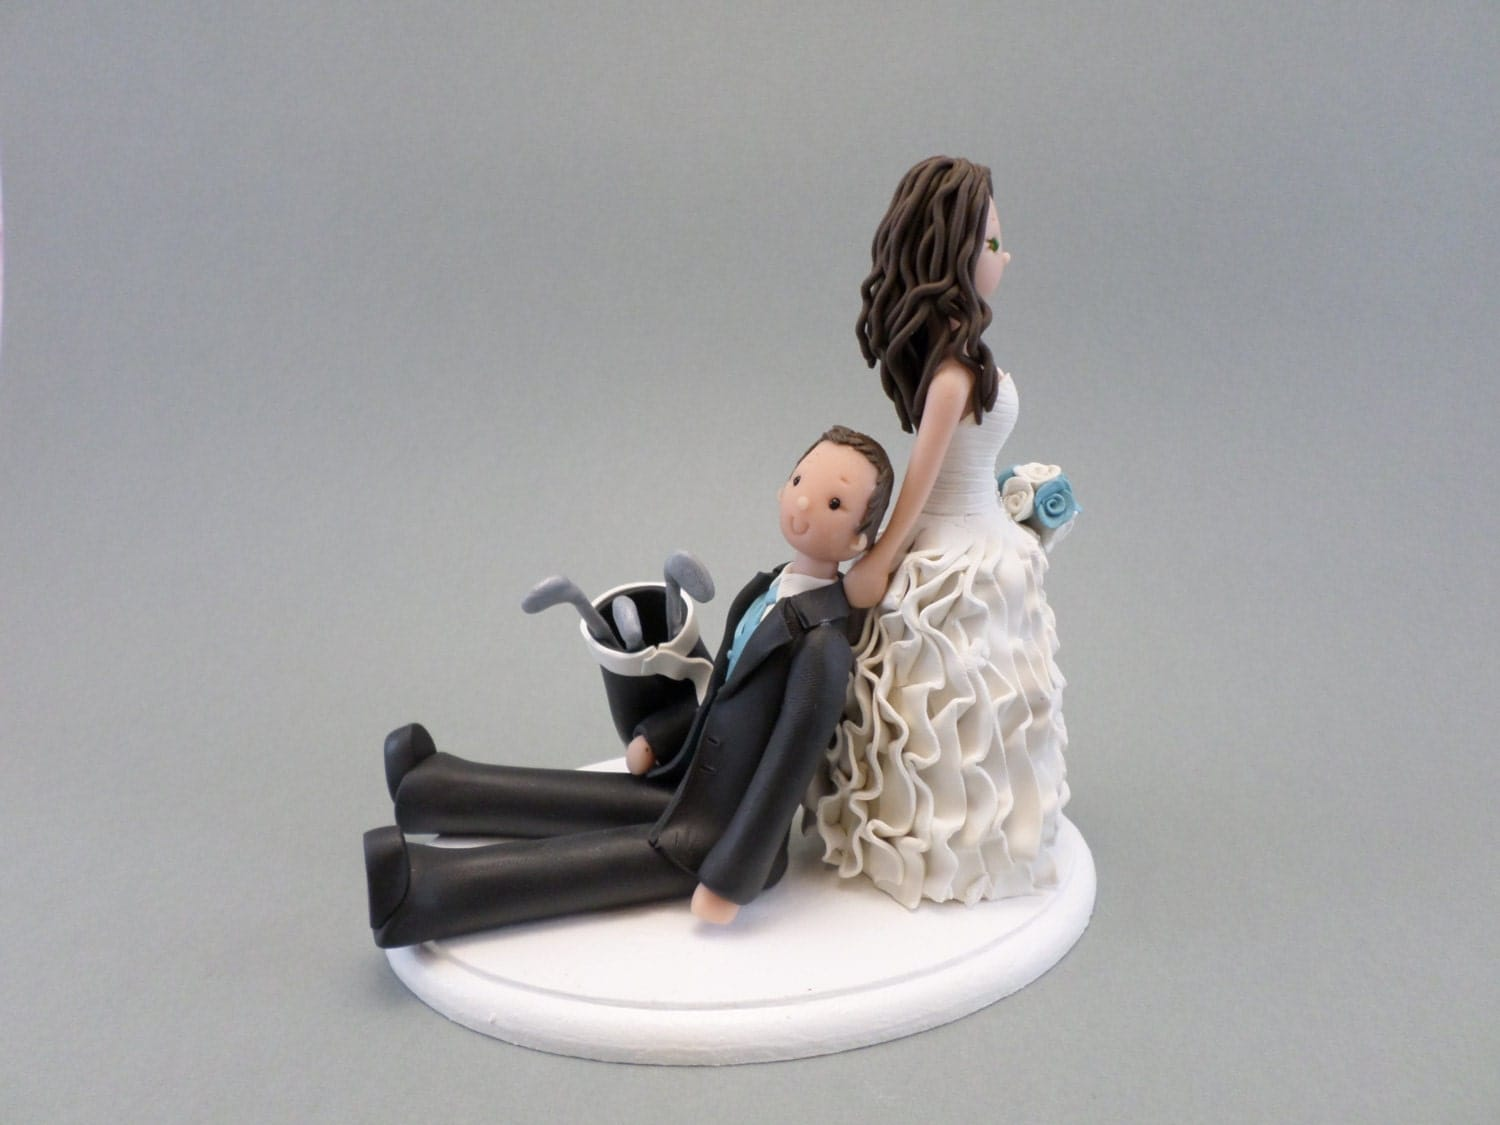 wedding cake toppers bride and groom golf dragging groom golfer custom made wedding cake topper 26410